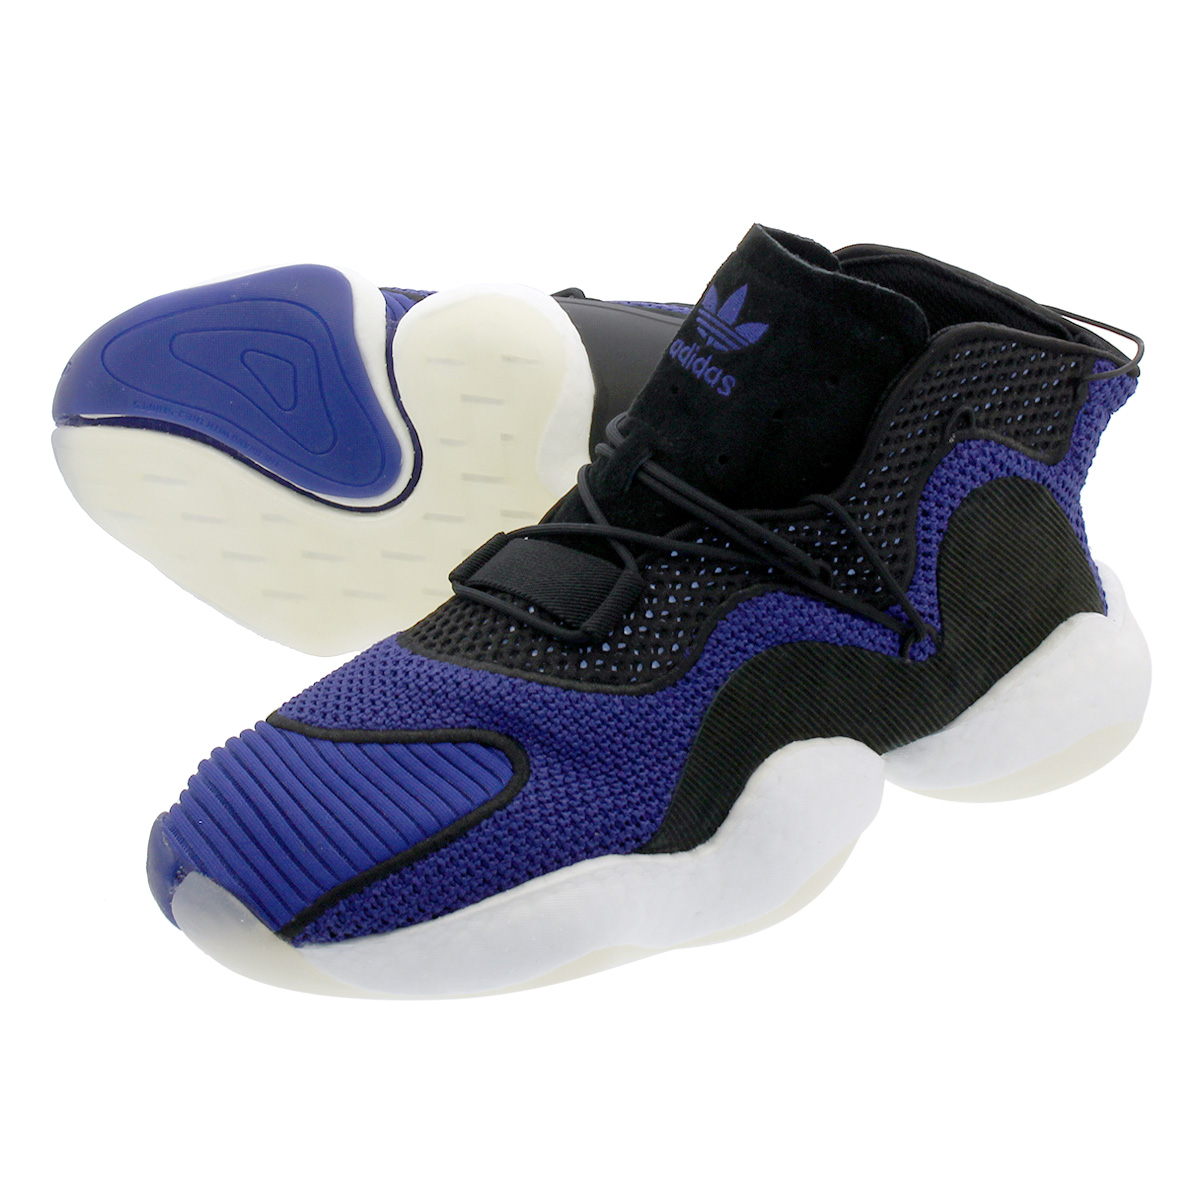 291c641f9079 adidas CRAZY BYW LVL I Adidas crazy BYW LVL I REAL PURPLE CORE BLACK RUNNING  WHITE b37550